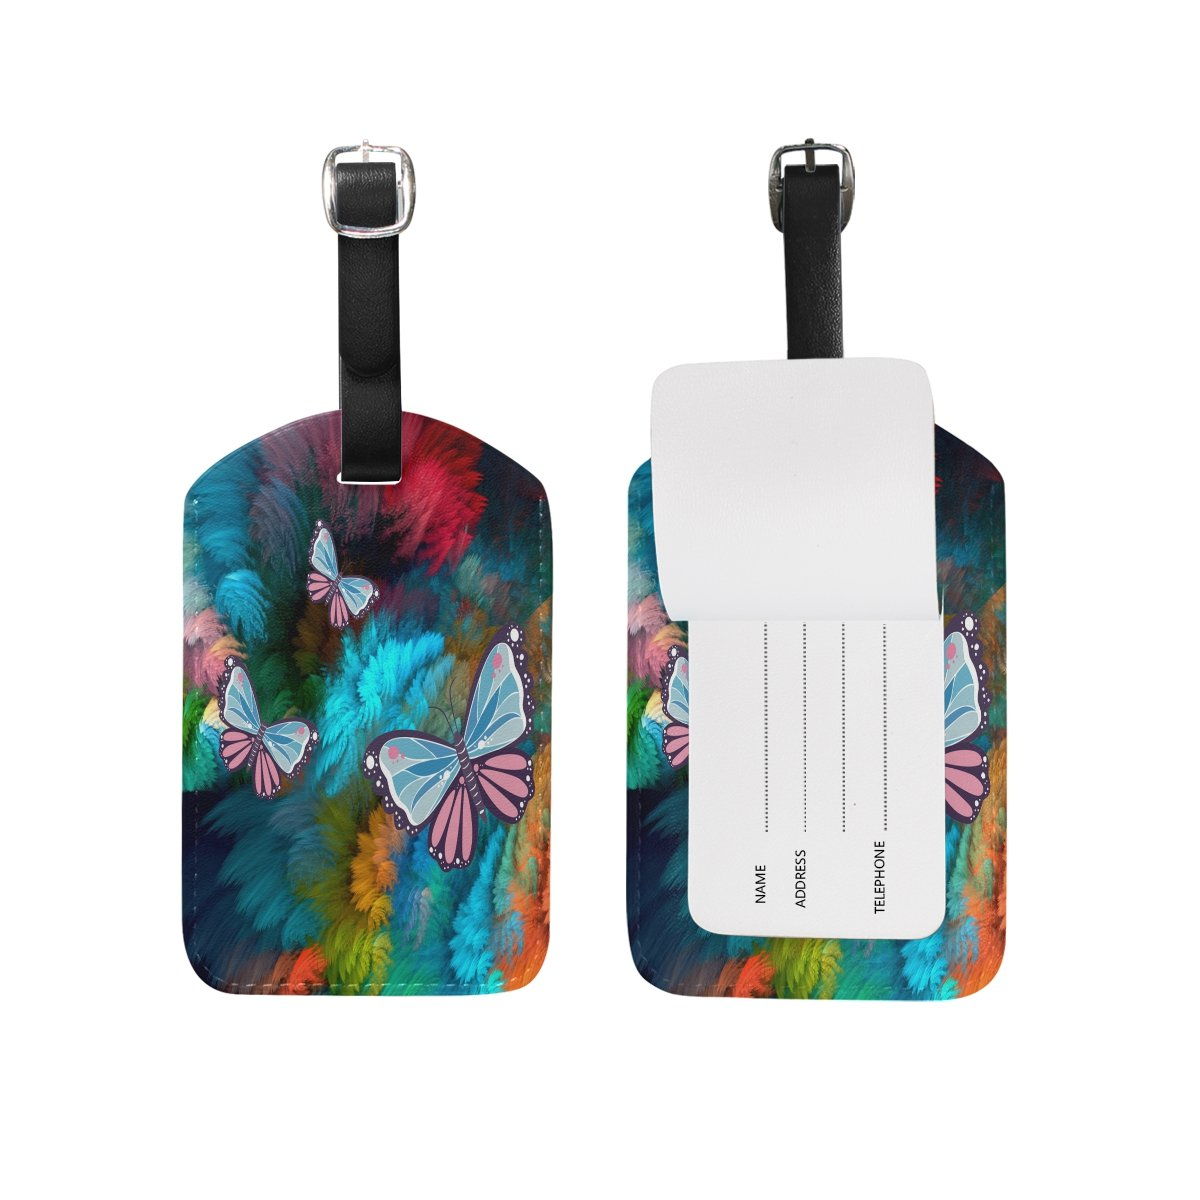 Deep Butterfly Leather Cruise Travel USA Luggage Tags Card Bag ID Label (2Pcs)